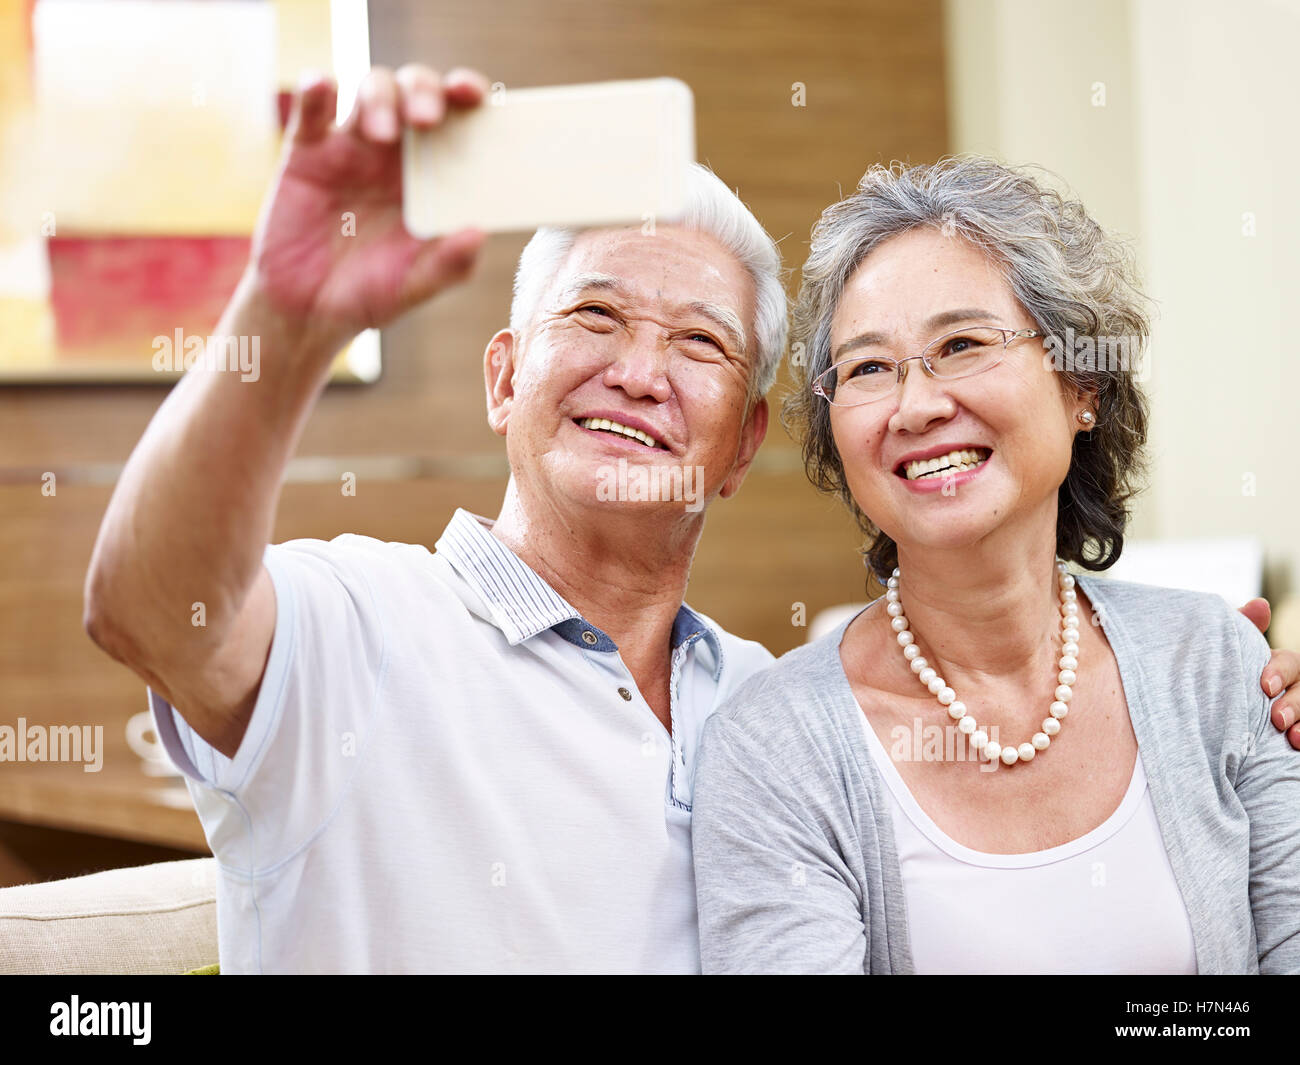 senior asian couple taking a selfie at home using cellphone - Stock Image